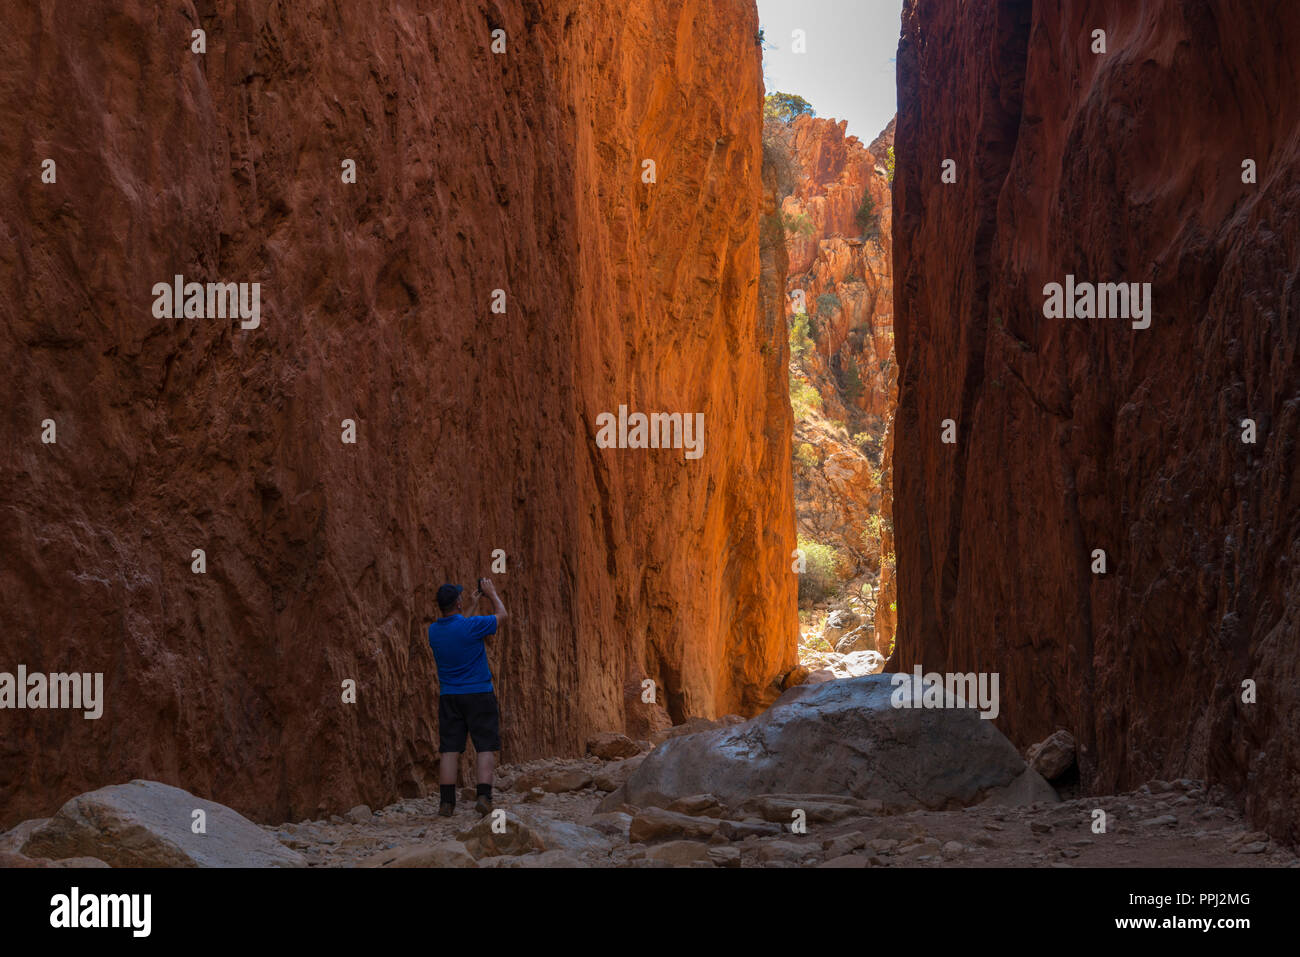 west macdonnell ranges, standley chasm, gorge, near alice springs, Nothern Territory, Australia - Stock Image